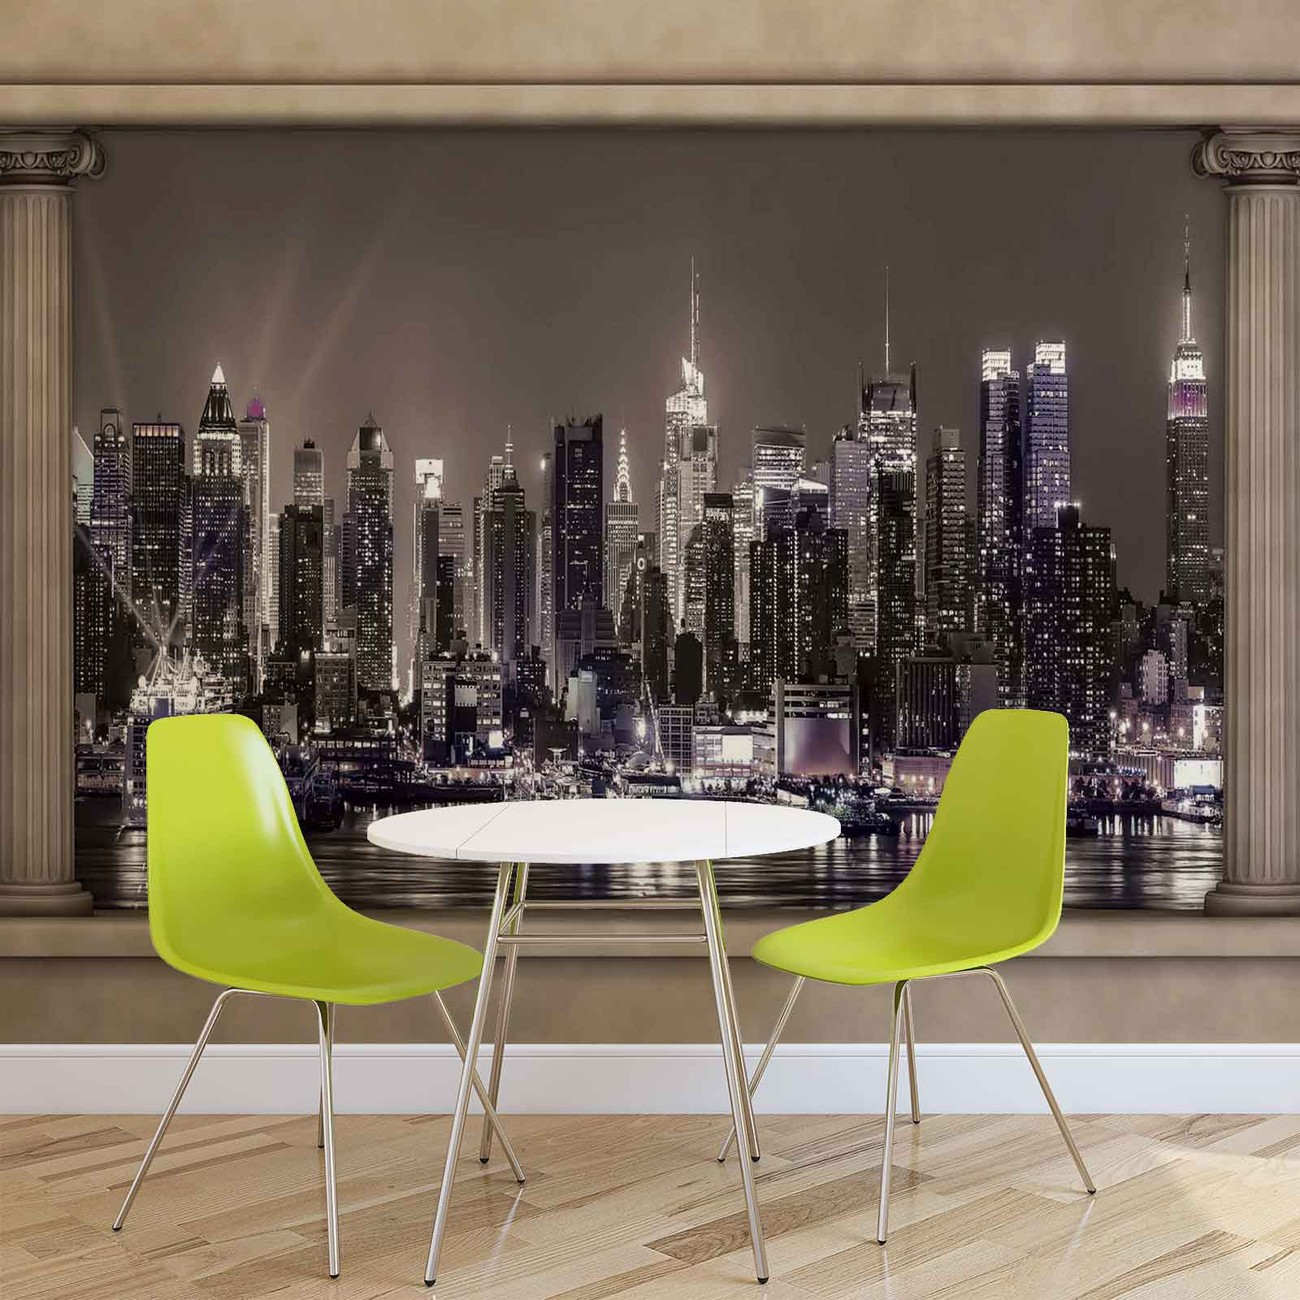 New york city skyline window view wall paper mural buy for Cityscape wall mural